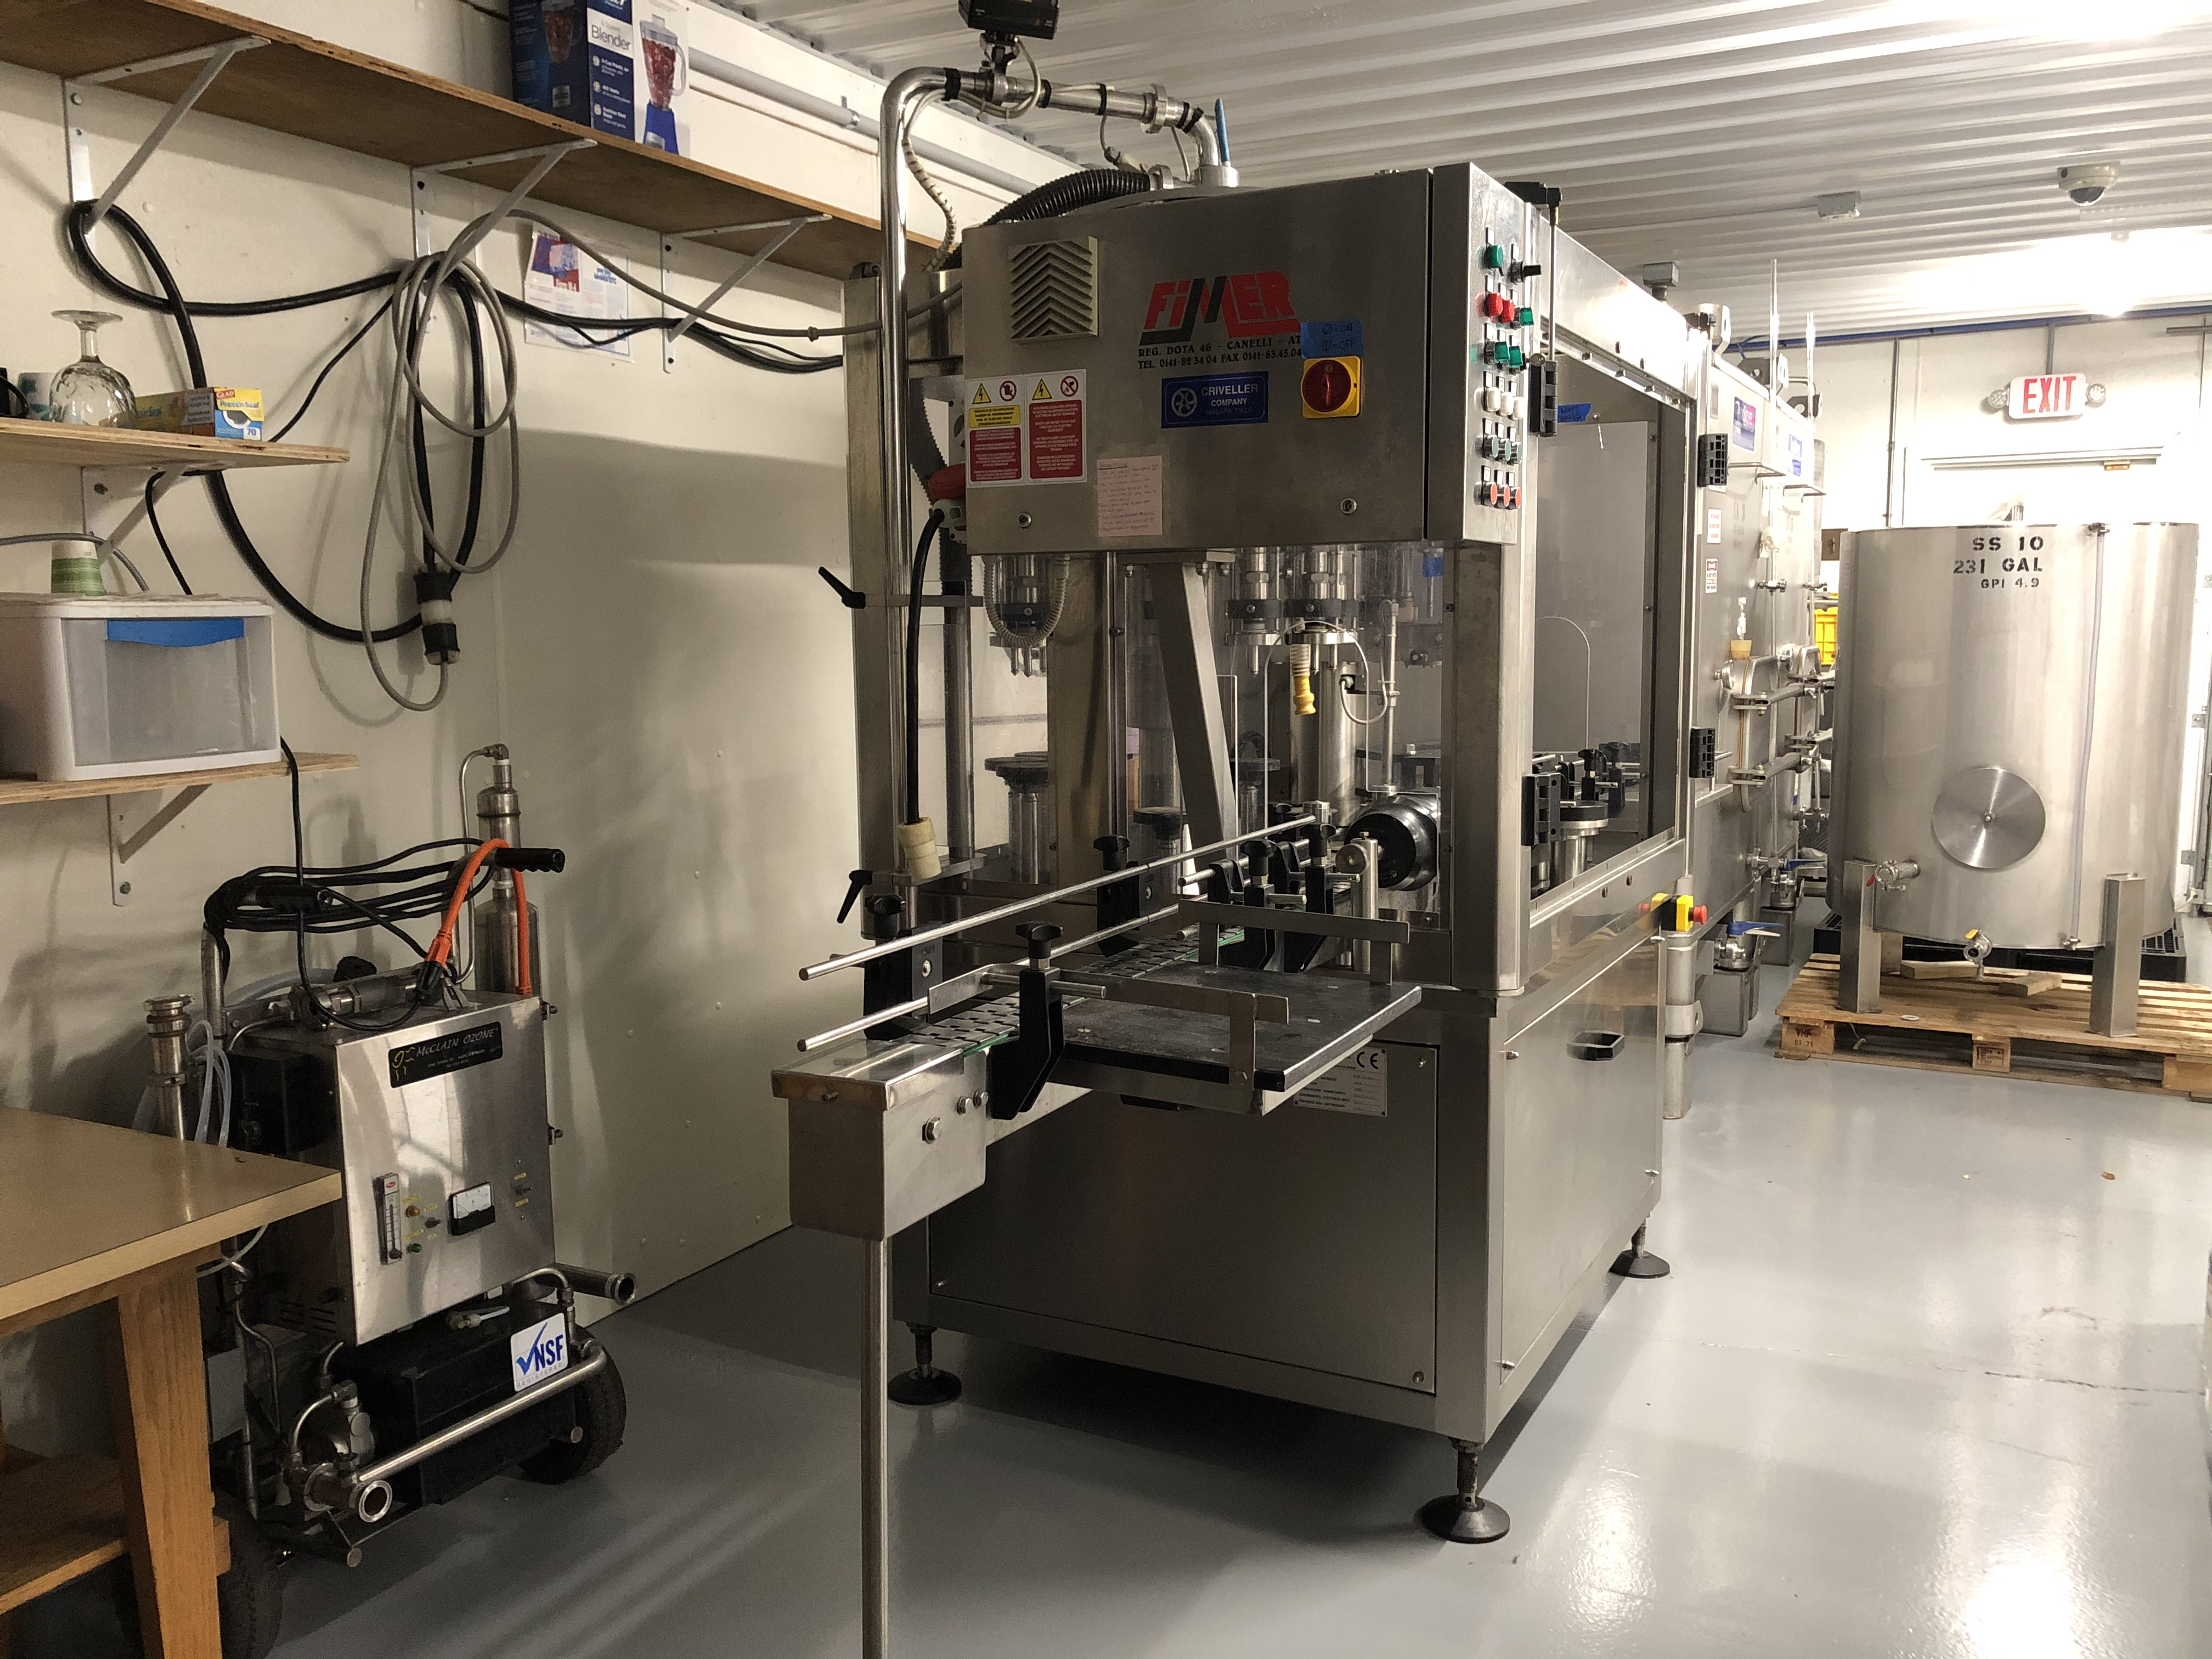 Conneaut Cellars wine bottling equipment shown